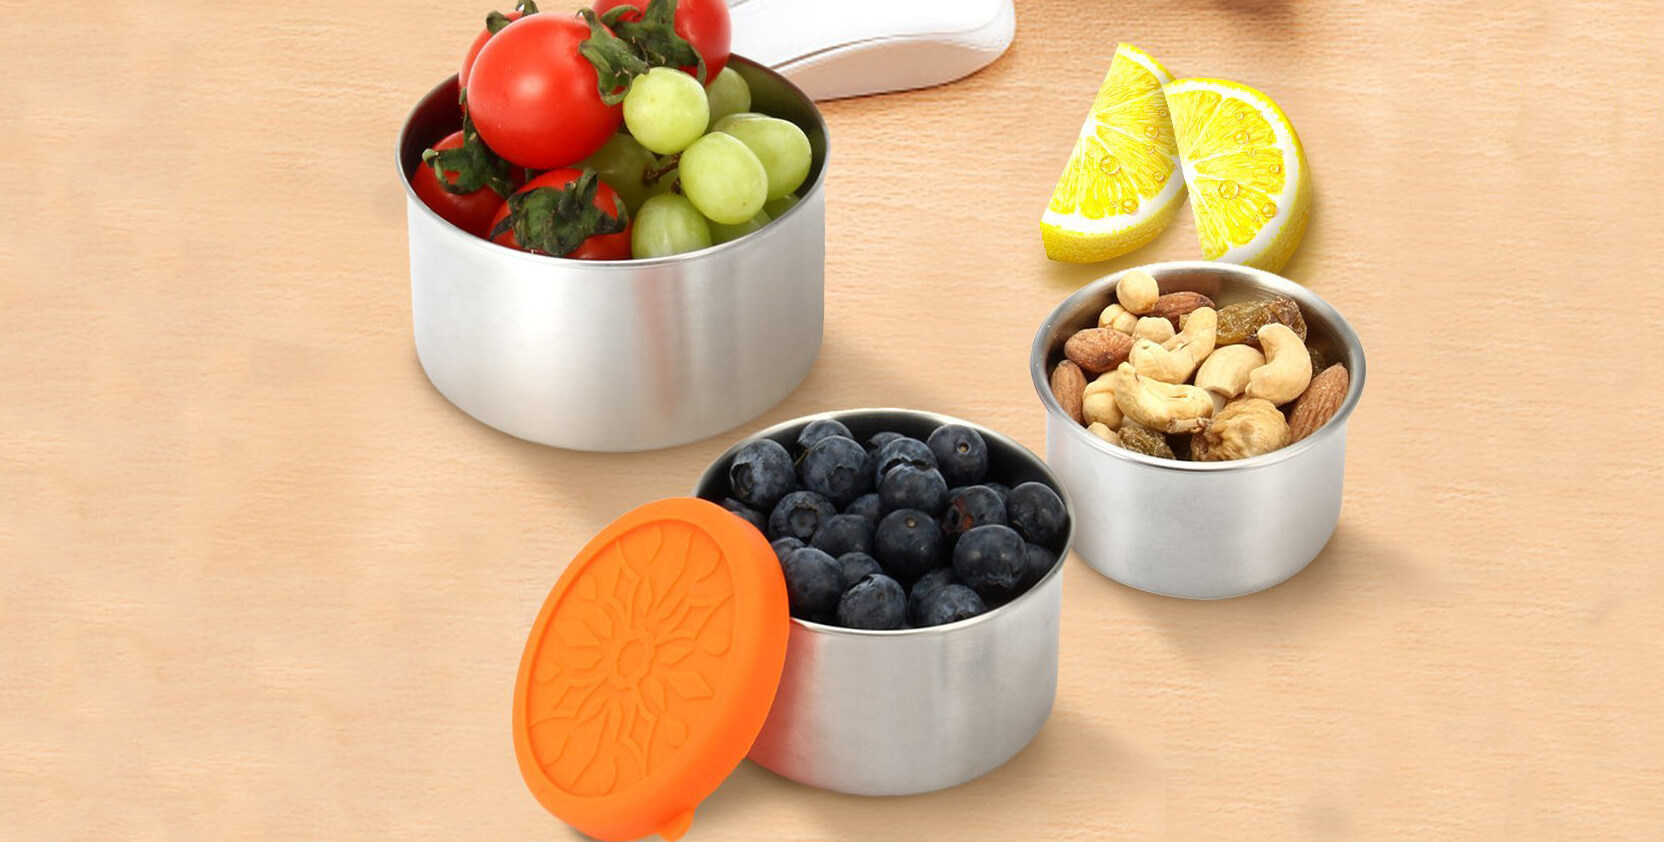 Stackable Food Containers, by Janolia